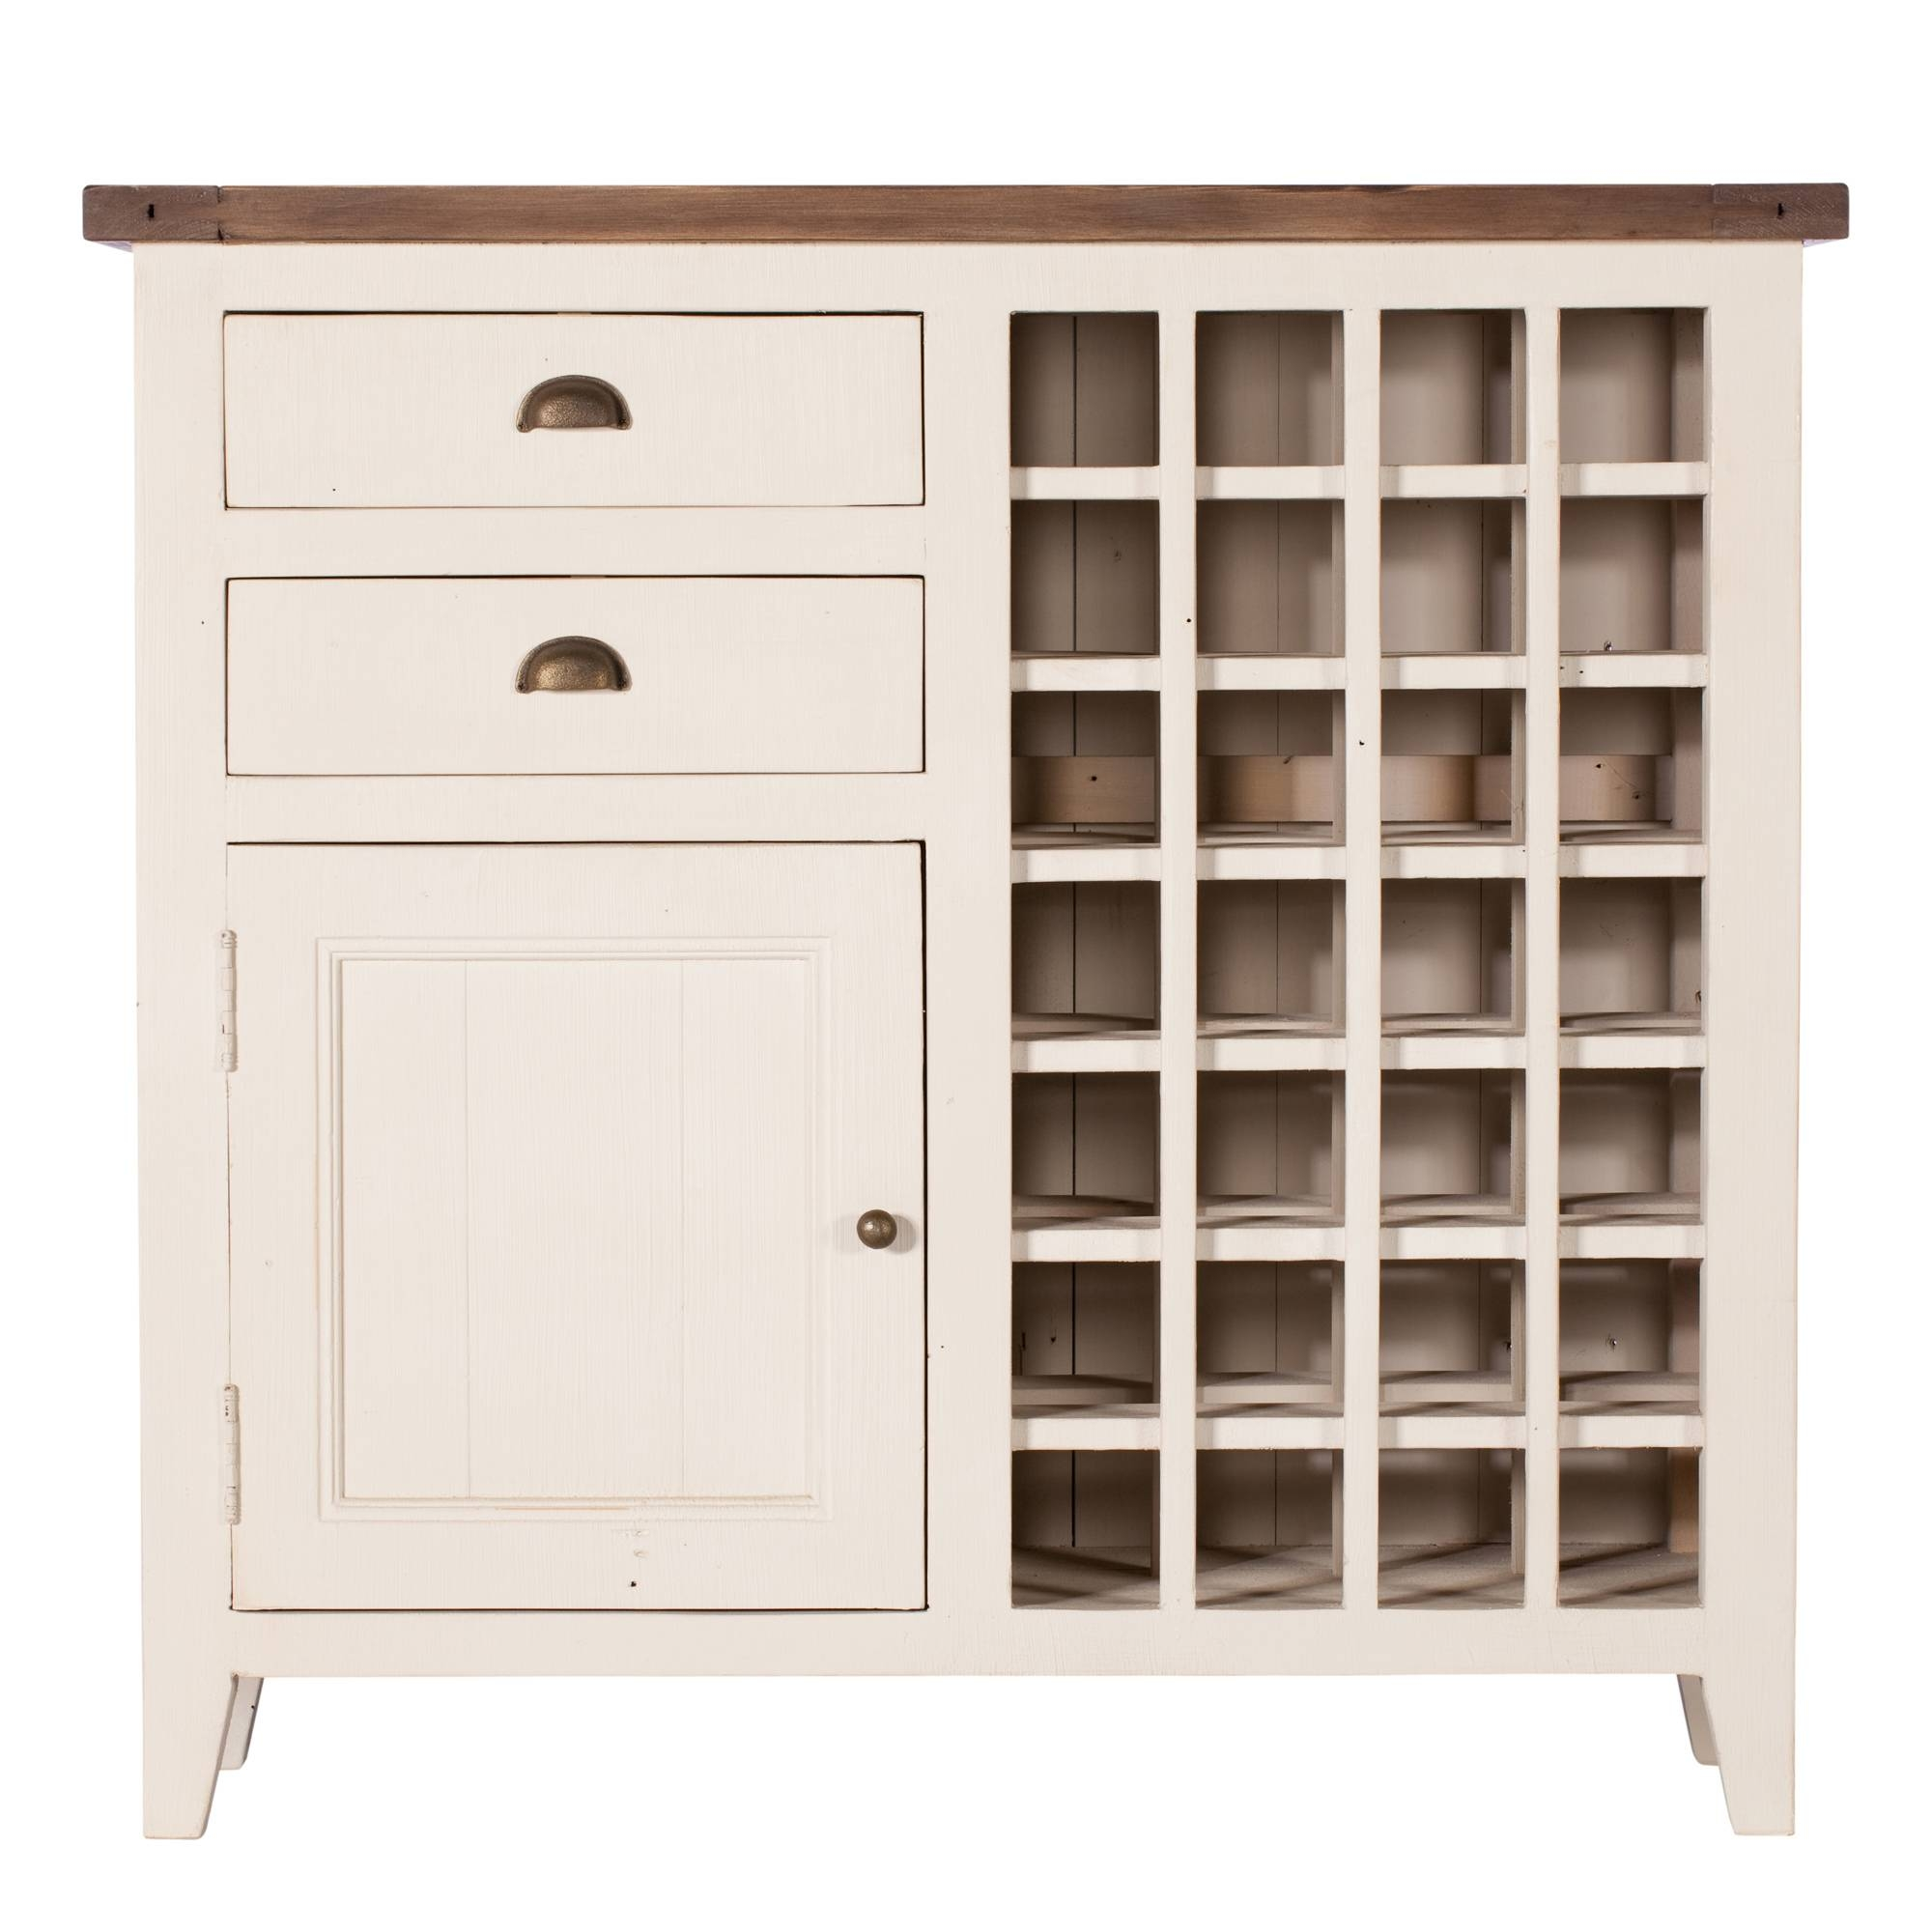 Aldeburgh Wine Rack Sideboard | No 44 Furniture, Cobham Nr London regarding Sideboards With Wine Racks (Image 1 of 30)